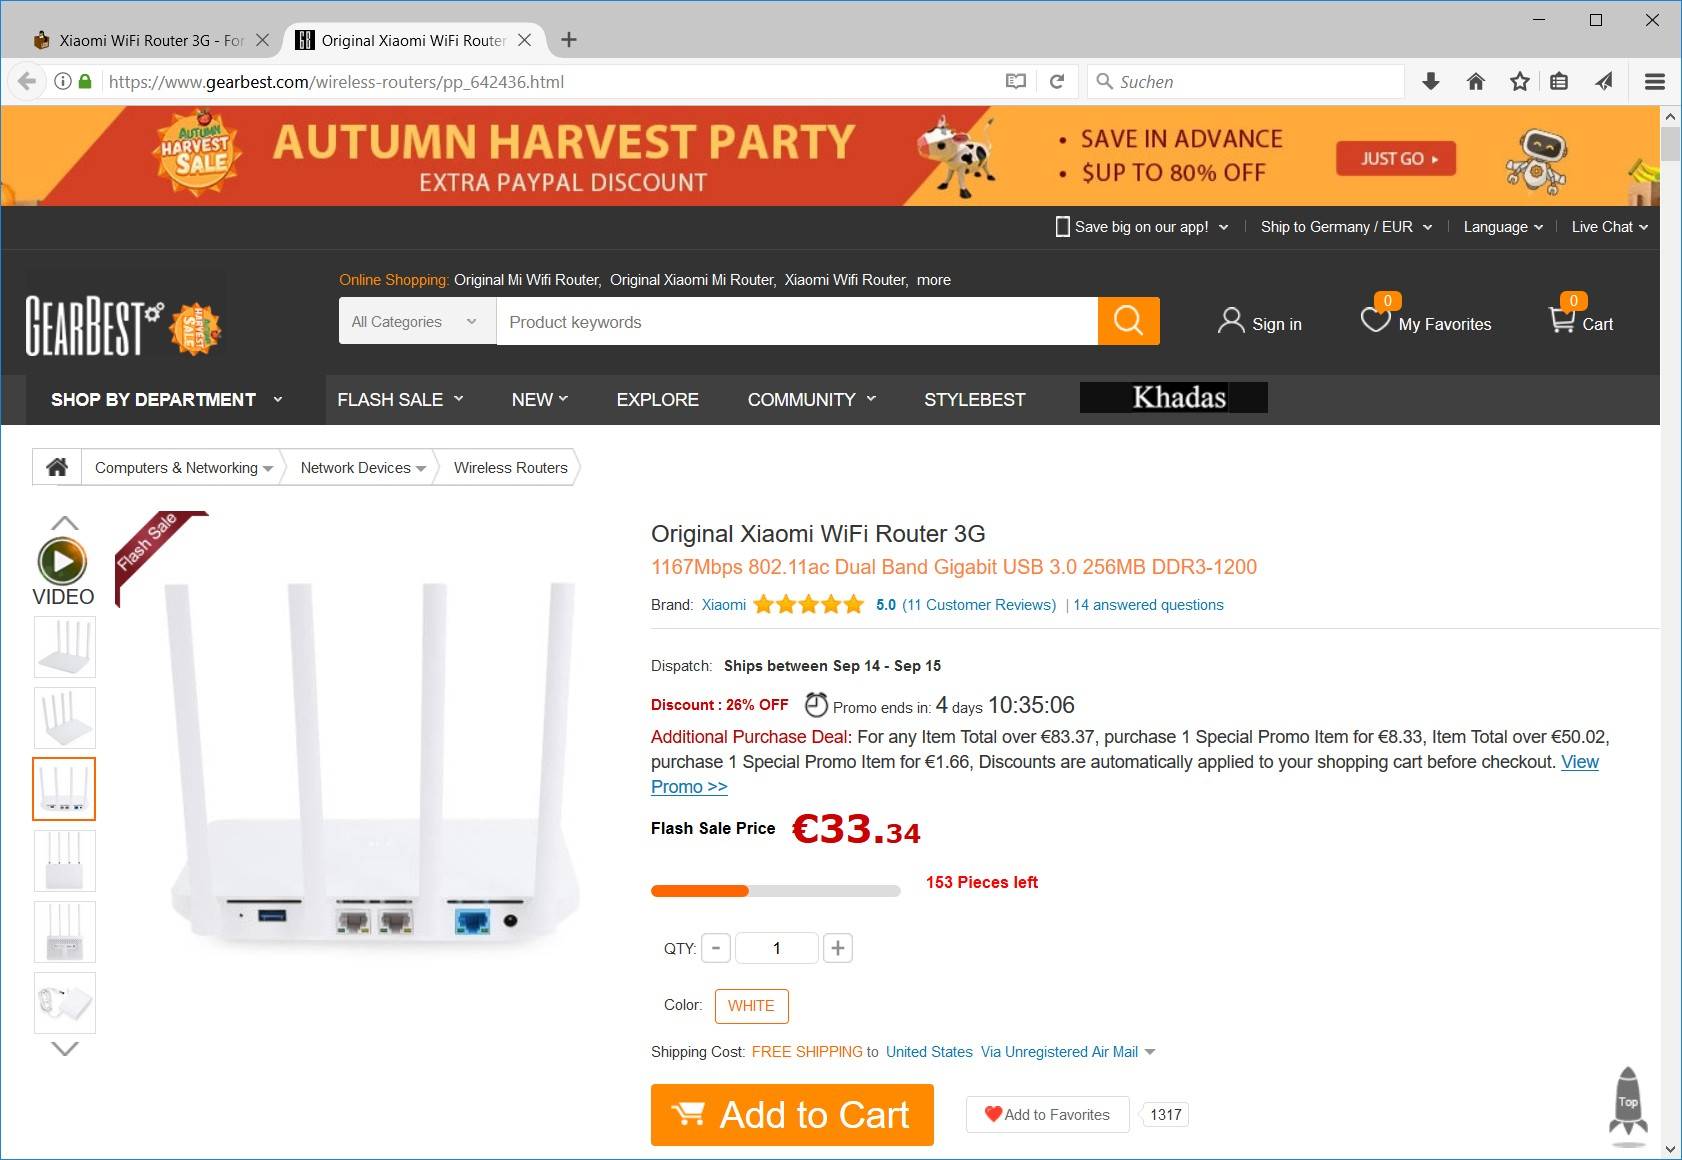 Xiaomi WiFi Router 3G - For Developers - OpenWrt Forum